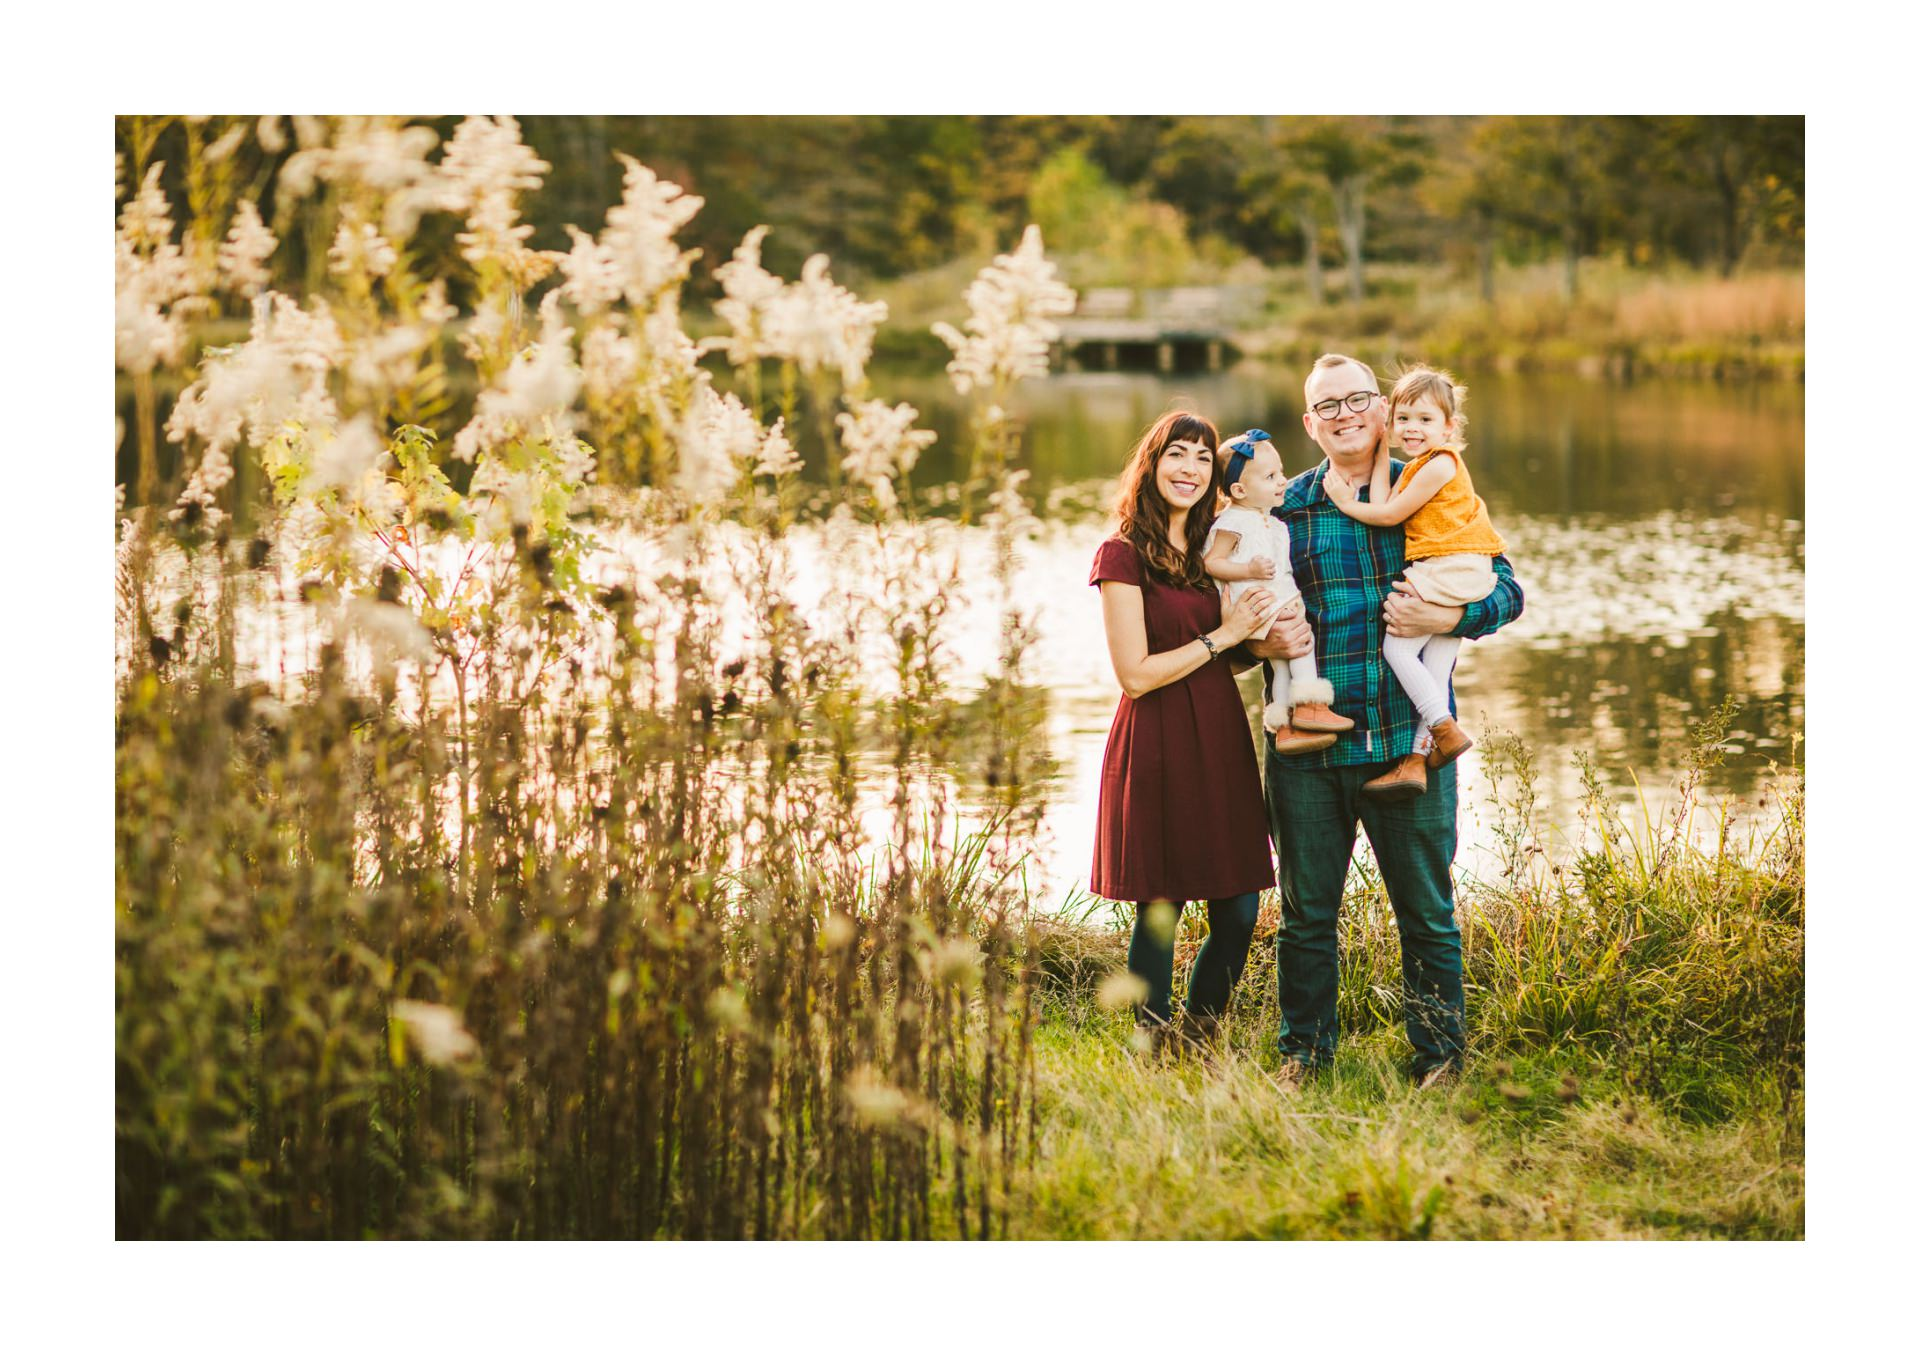 Lakewood Family Portrait Photographer Ken and Angie Clunk 8.jpg